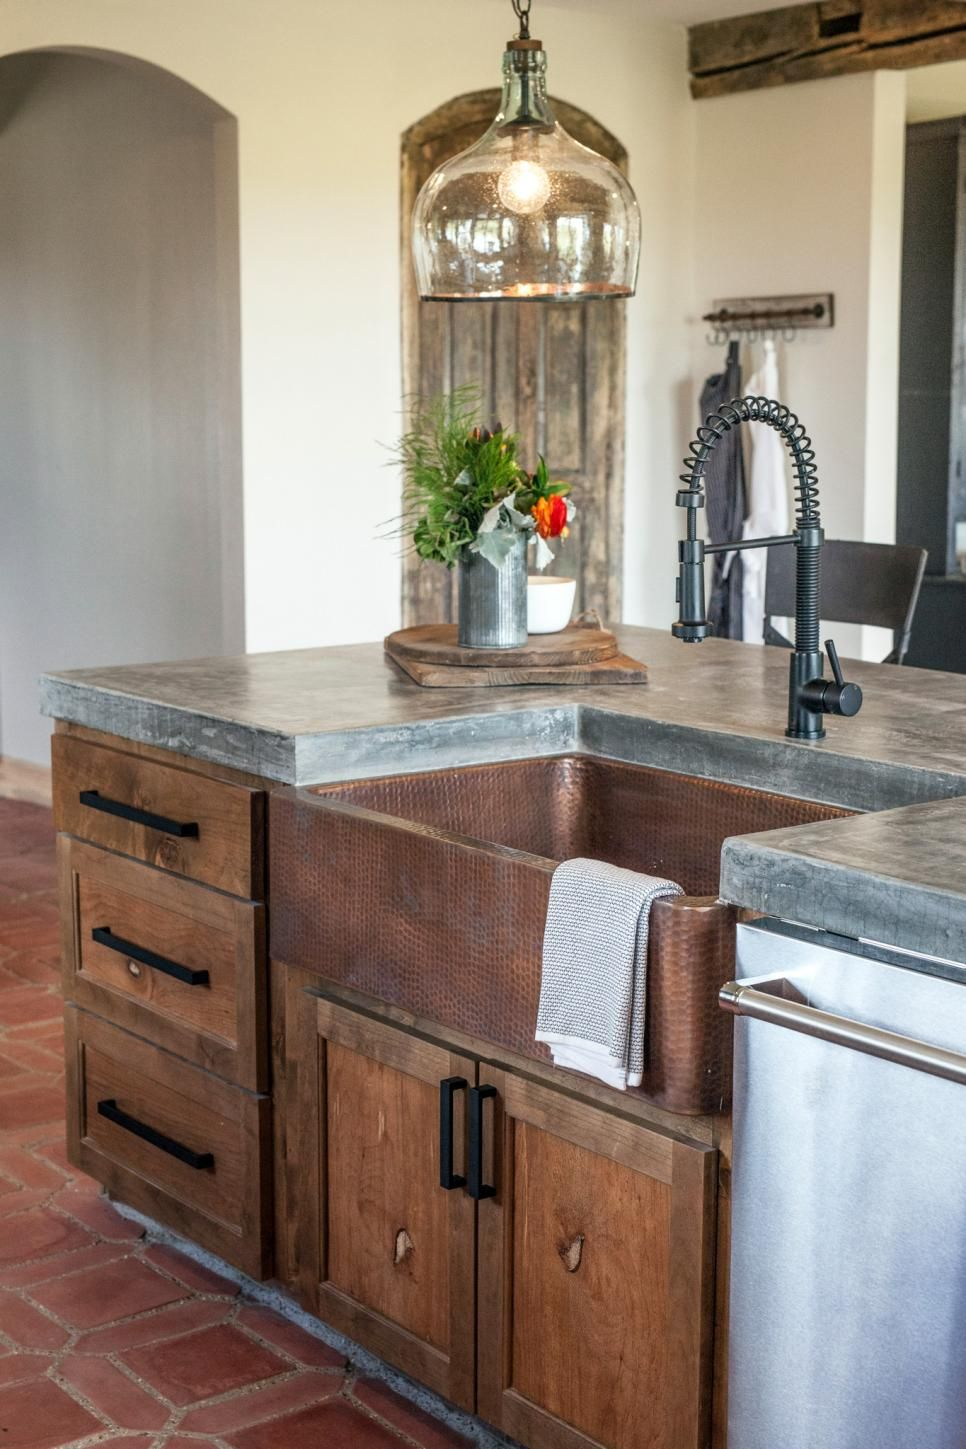 Fixer upper kitchen decor ideas - Love This Sink Sterling Zan Is A Fan Of Copper So Joanna Neutral Farmhouse Decorsmall Kitchen Ideas